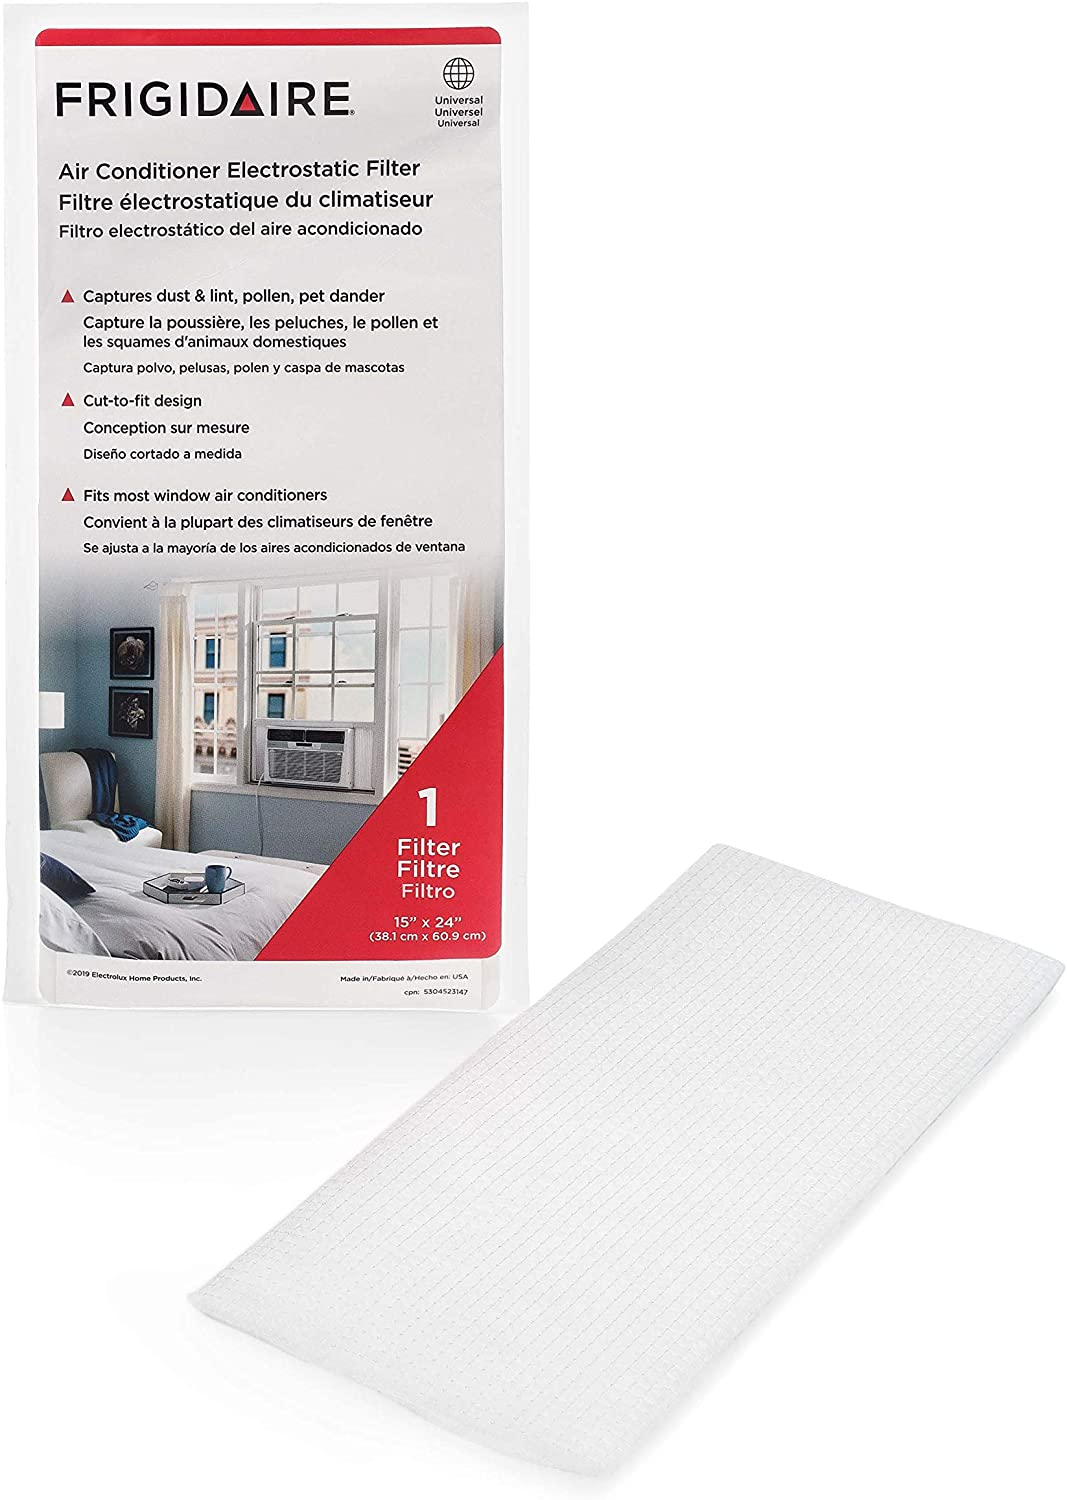 "Frigidaire 18FFRACF01 Air Conditioner Filter, 15"" x 24"", White"